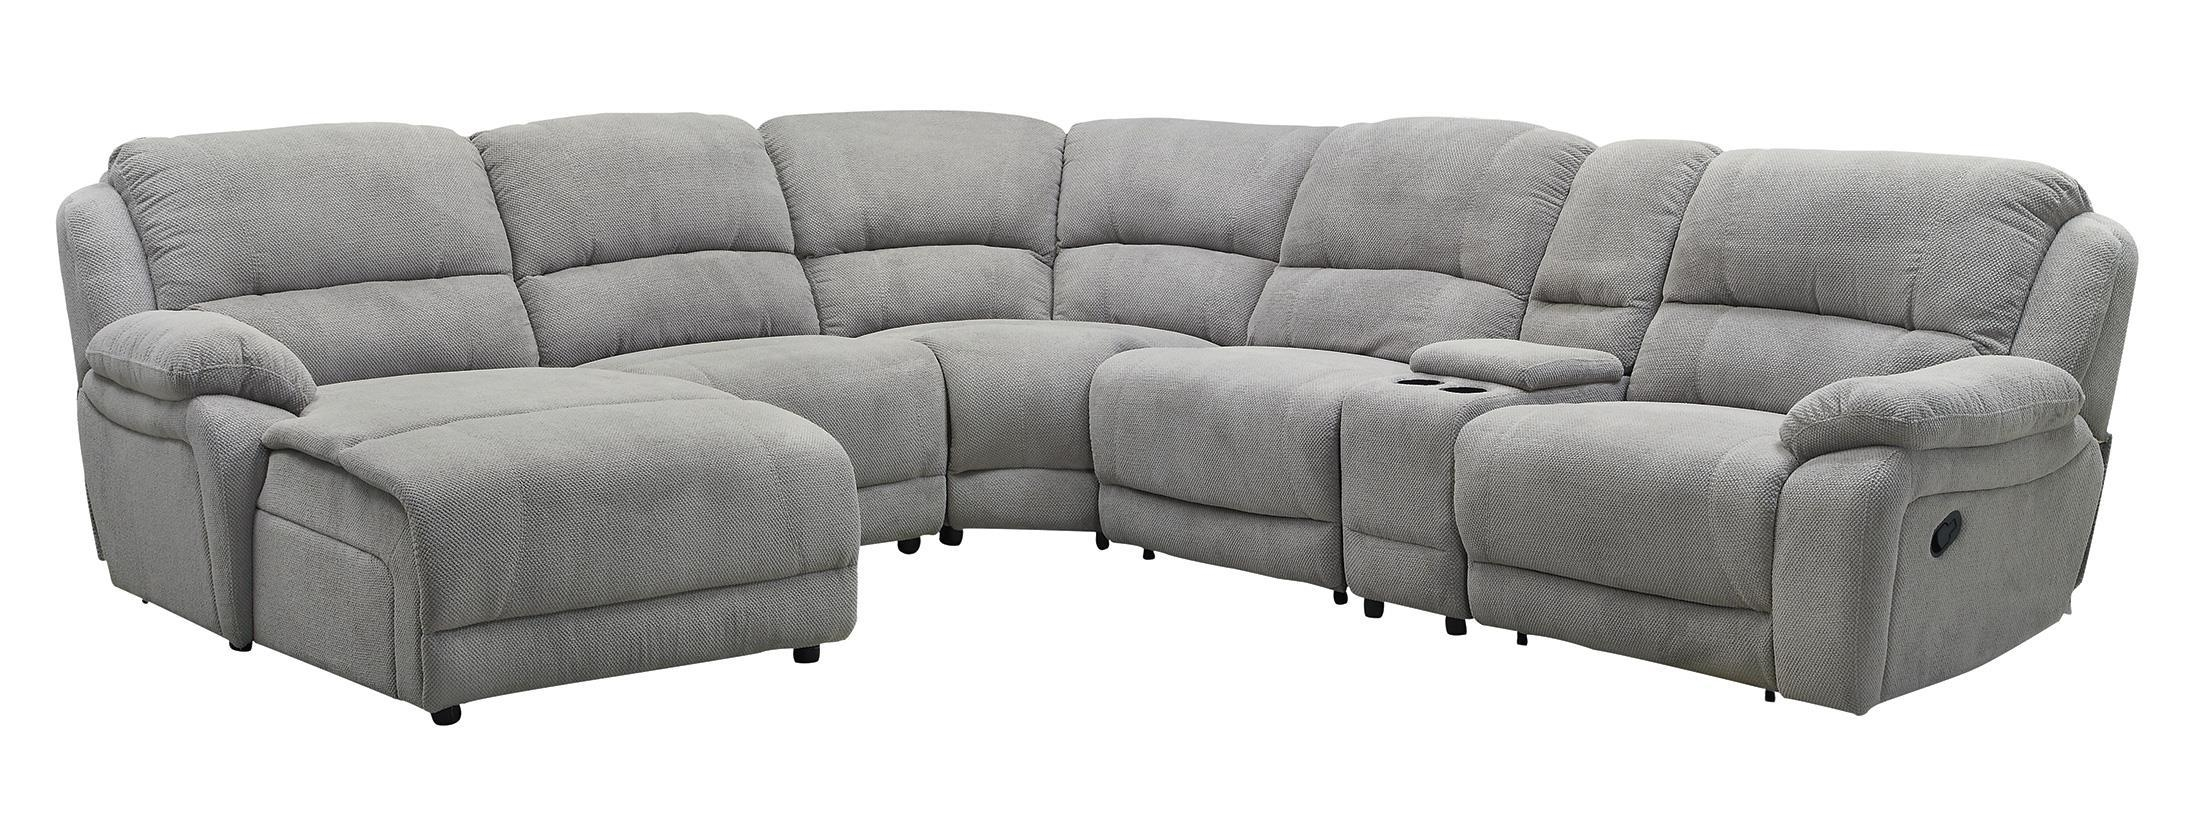 8 piece leather sectional sofa folding ottoman single bed 2019 latest 6 sofas couches ideas